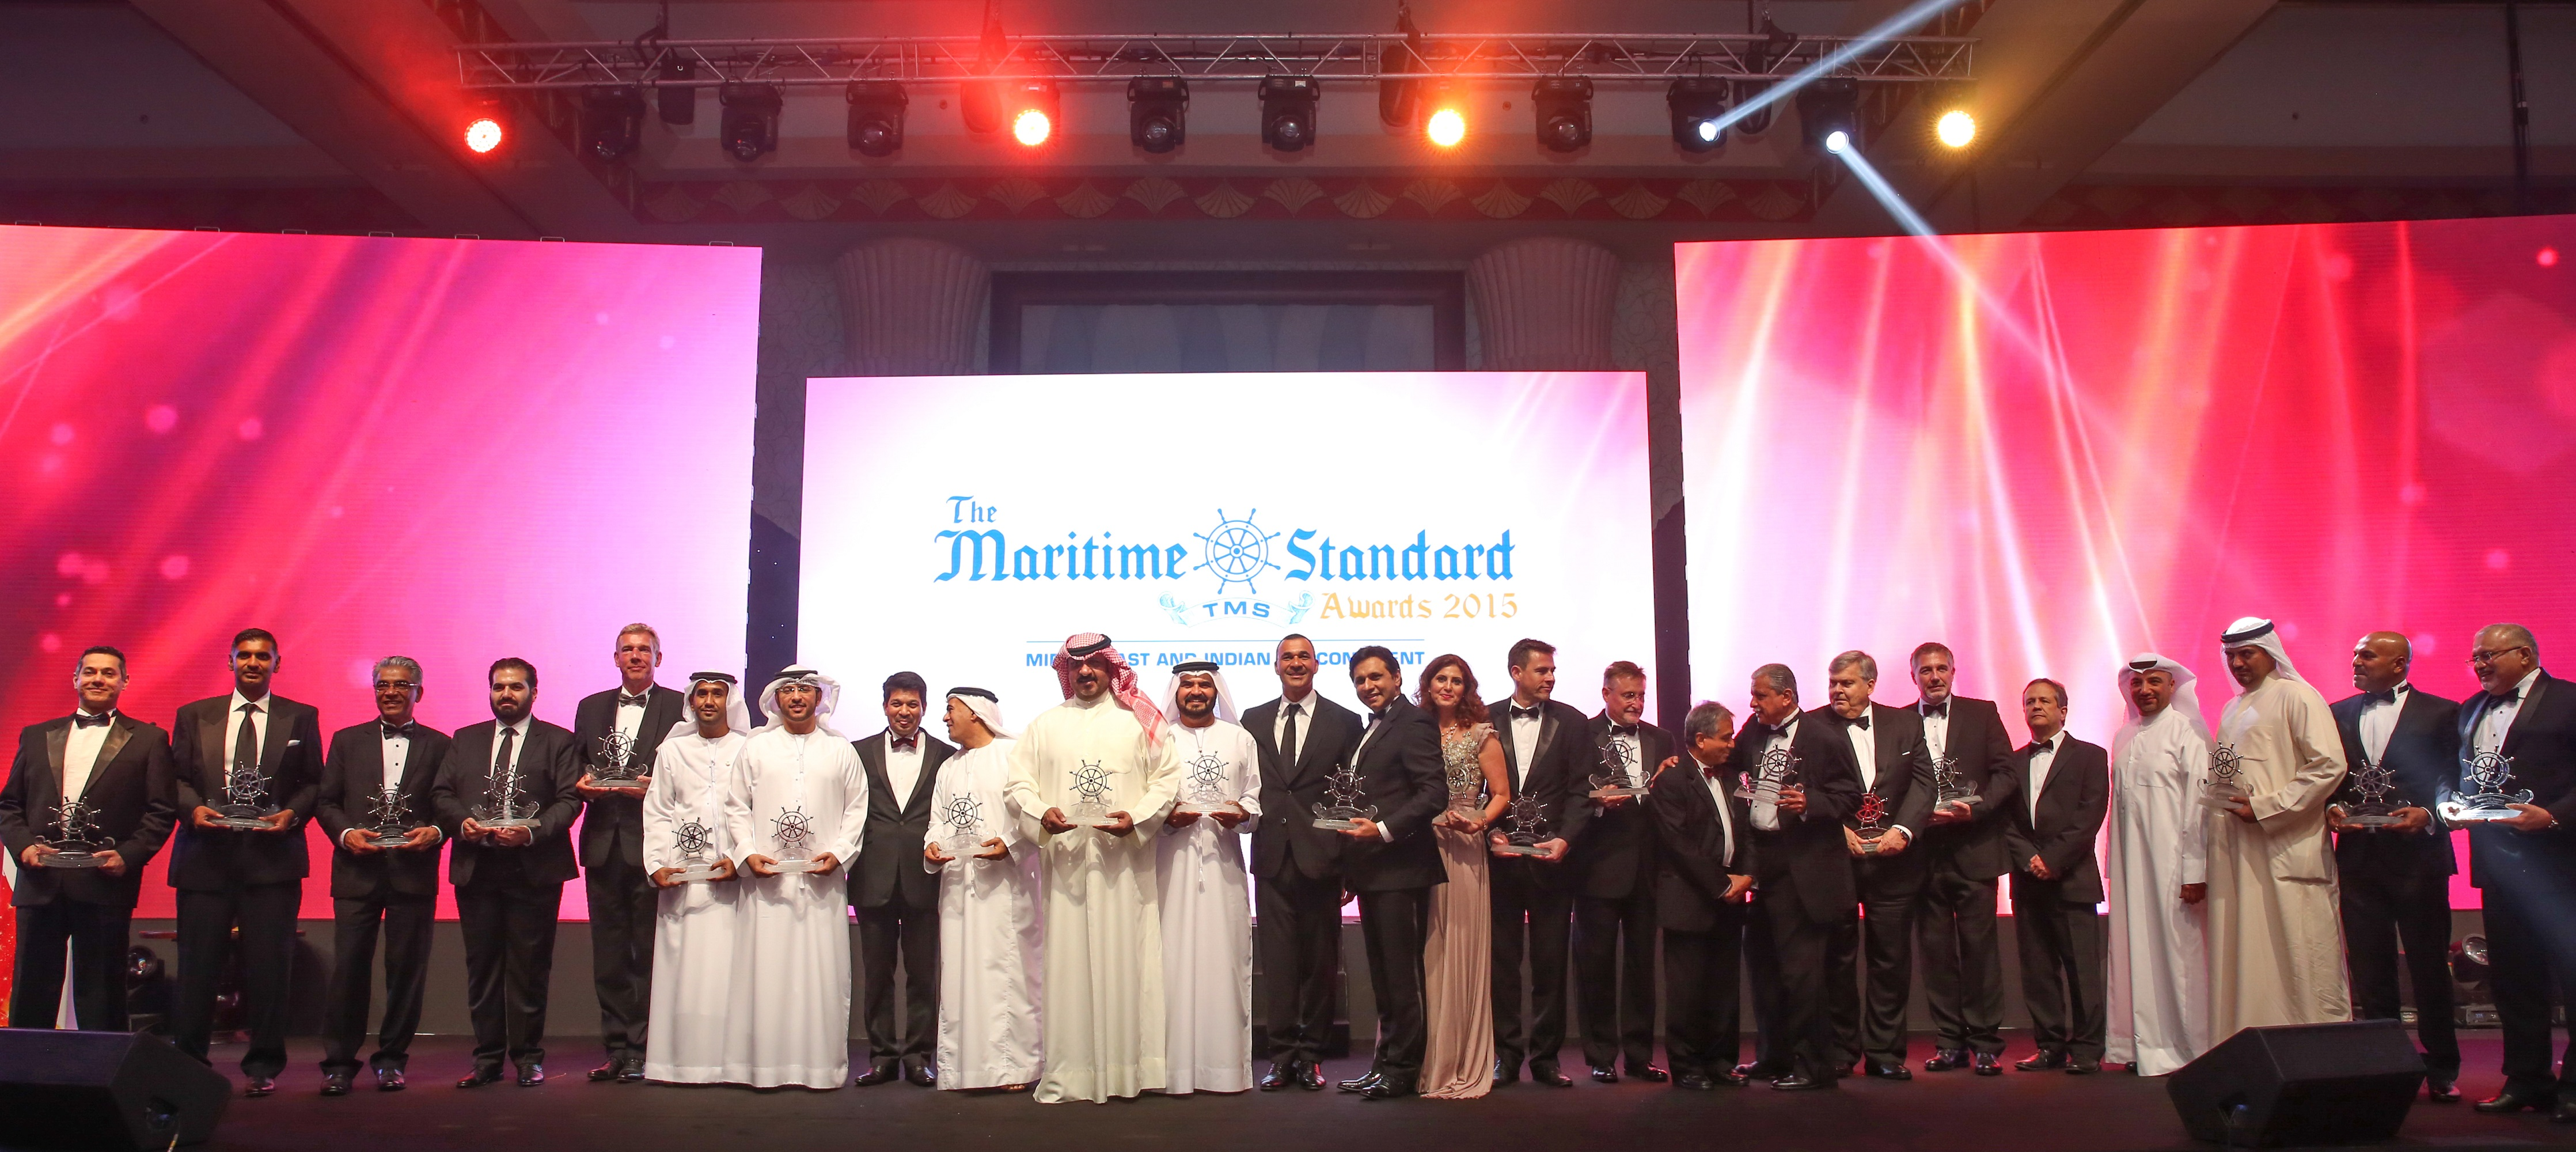 Finalists announced for The Maritime Standard Awards 2016